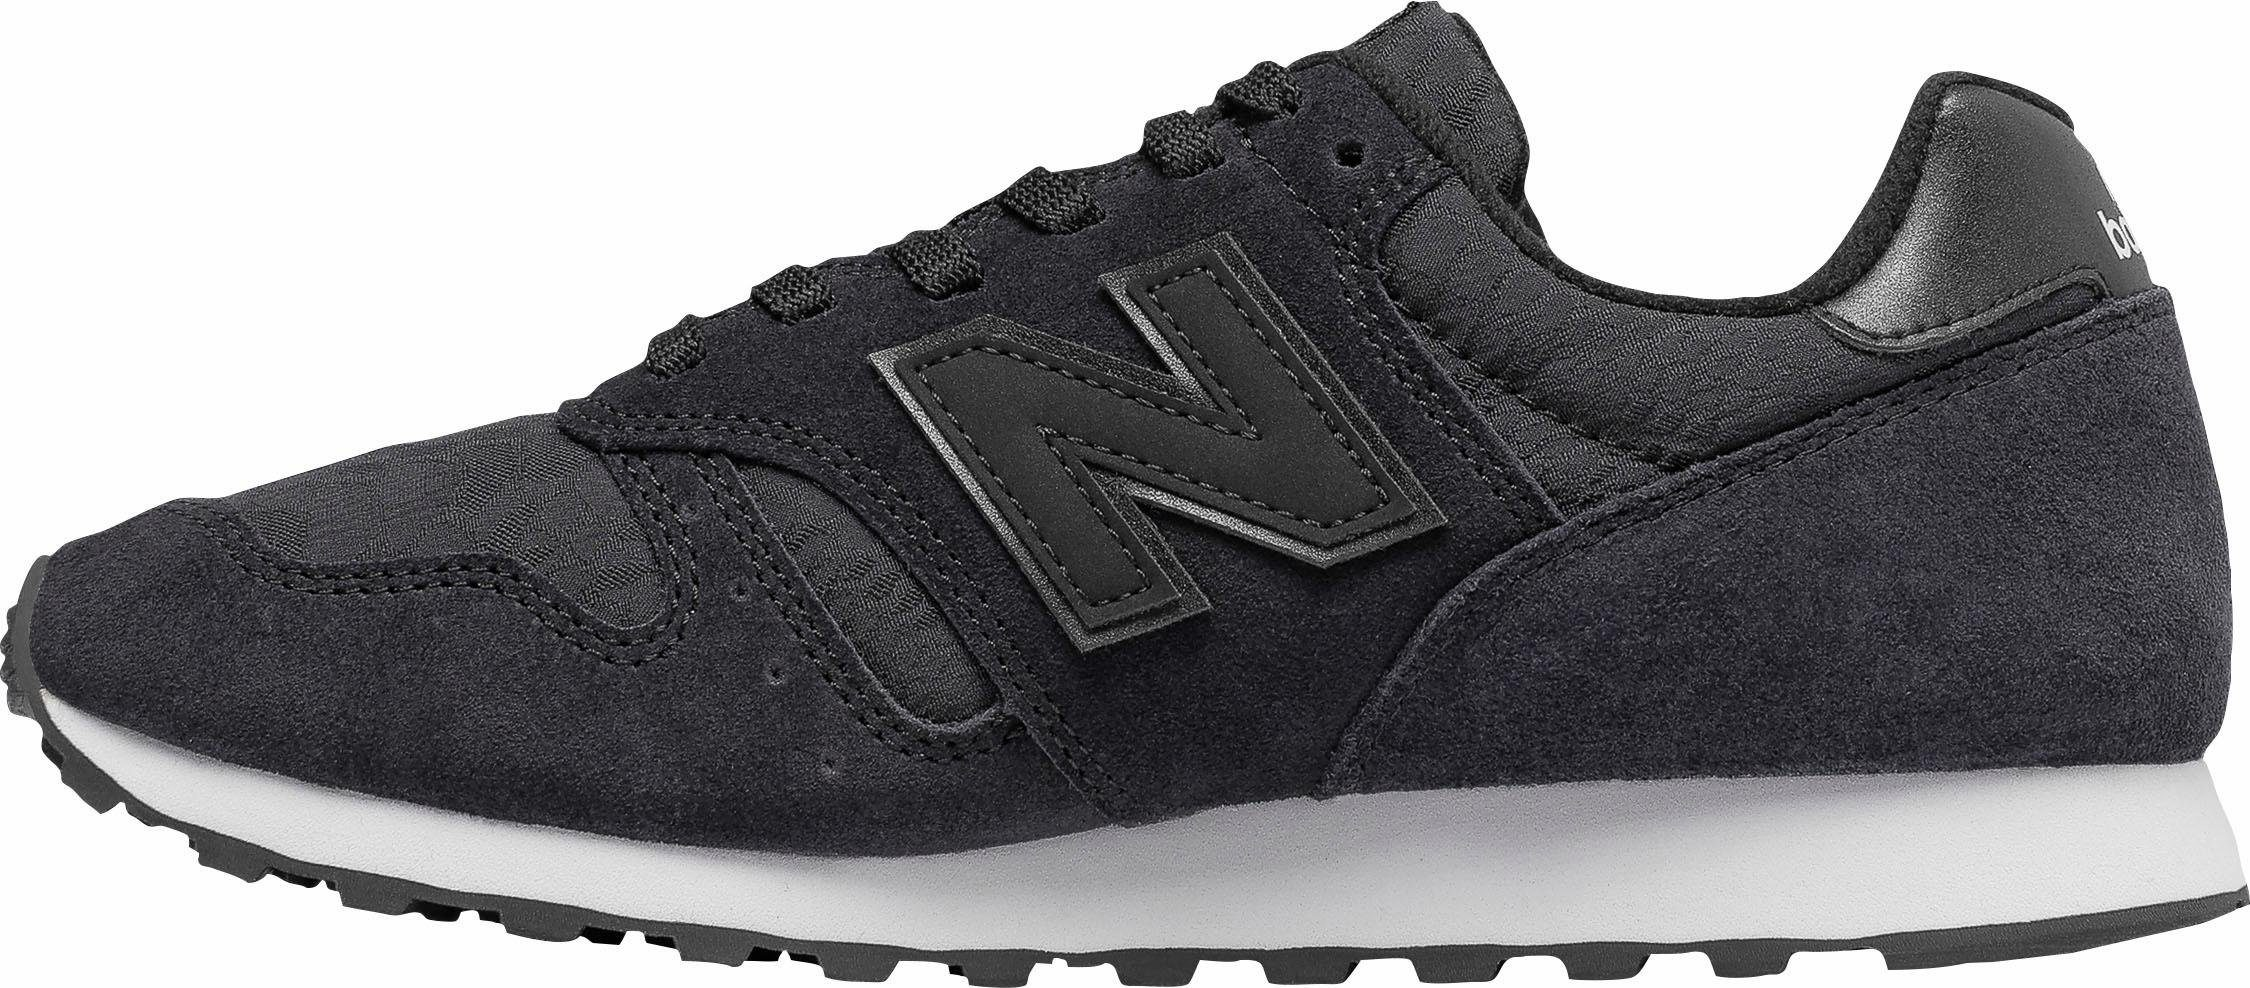 zwarte new balance sneakers wl373 dames